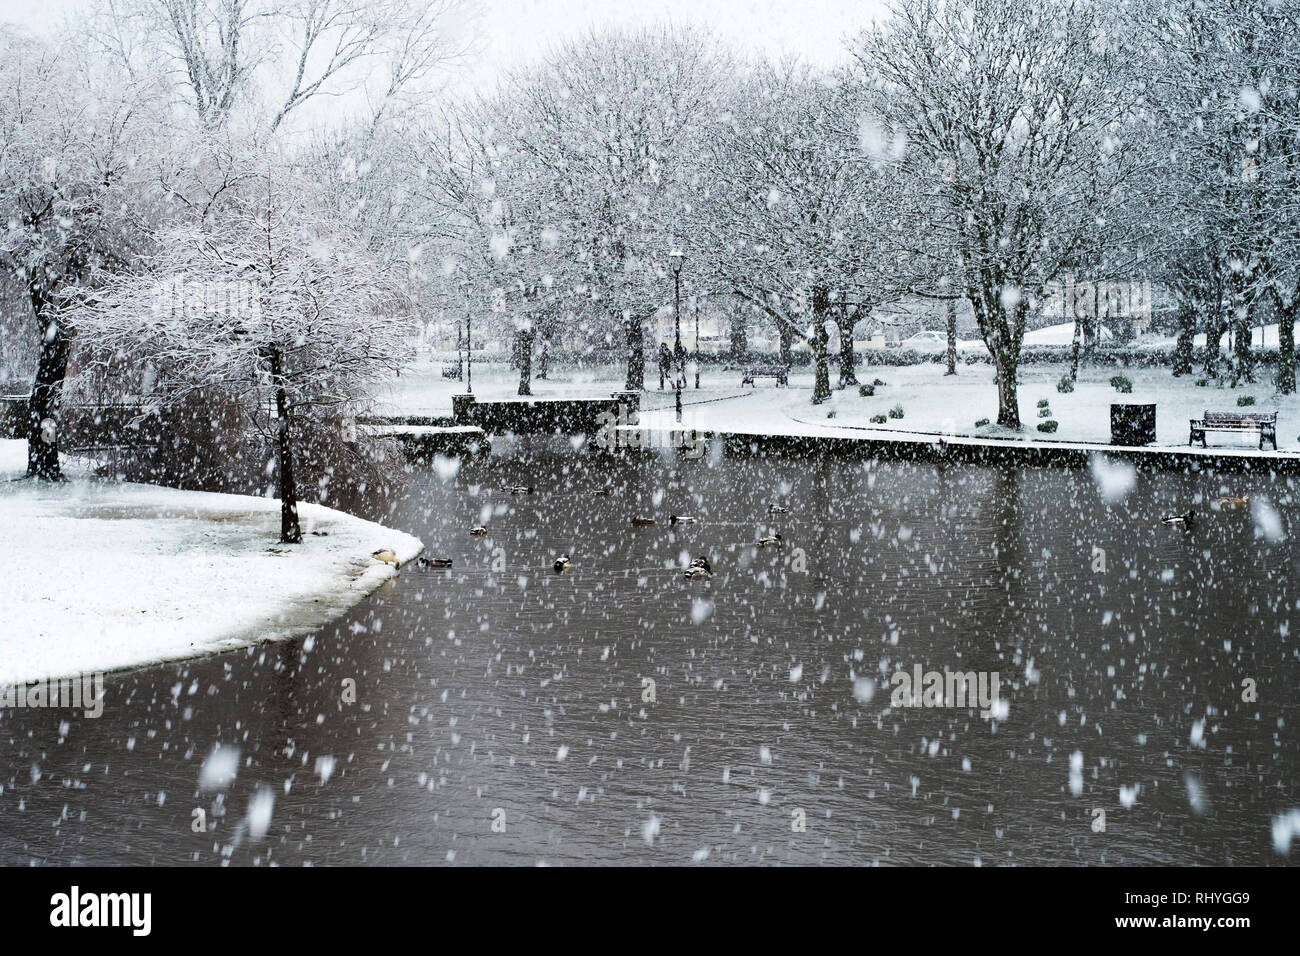 Heavy snowfall in Trenance Park in Newquay in Cornwall. - Stock Image